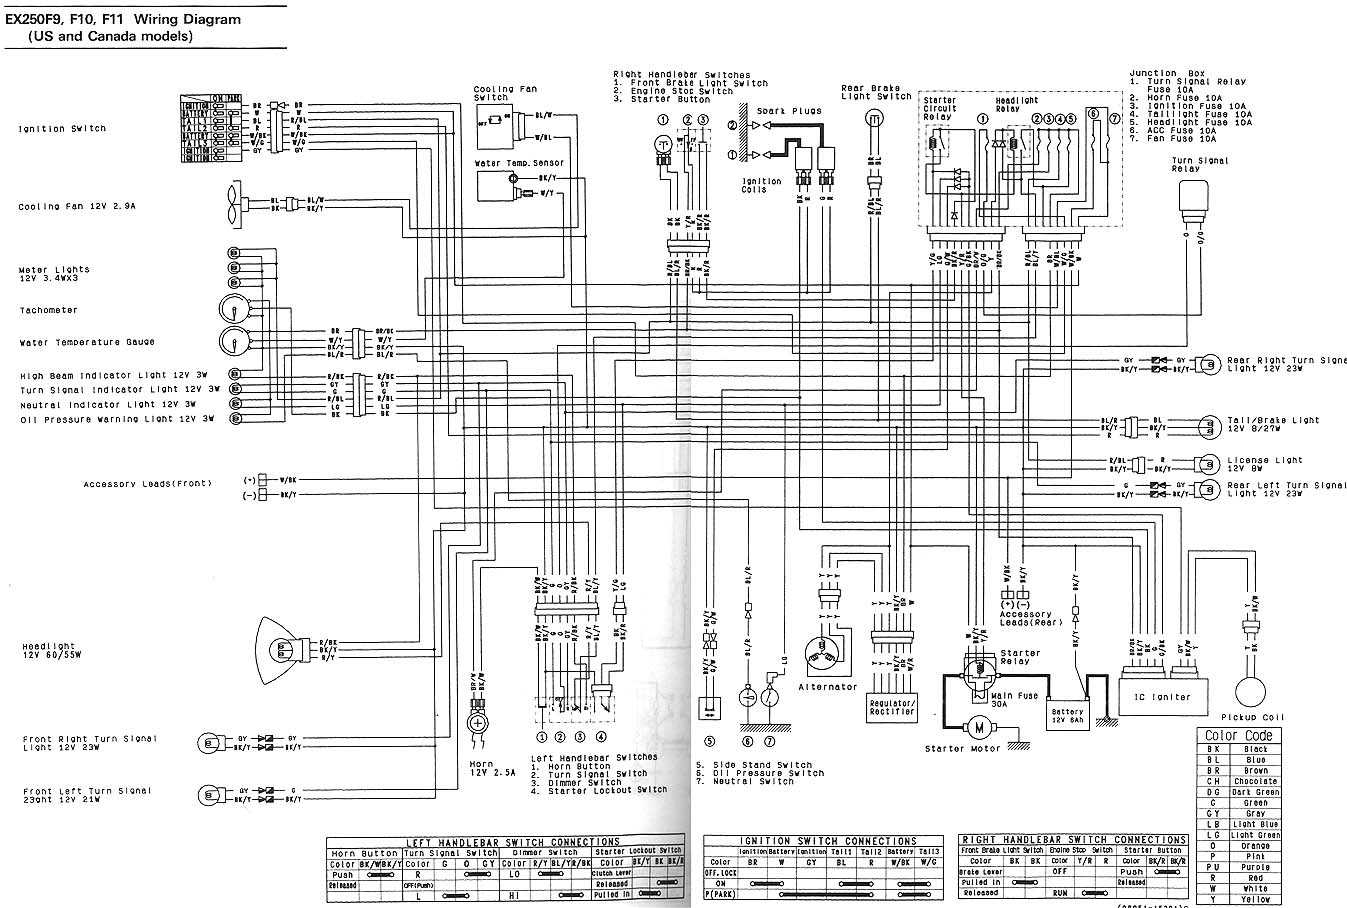 2012 Kawasaki Ninja 650r Wiring Diagram Library. Ninja 250 Wiring Diagram Auto Electrical 2008 Kawasaki 650 250r. Wiring. 1994 Klr 650 Wiring Schematic At Scoala.co